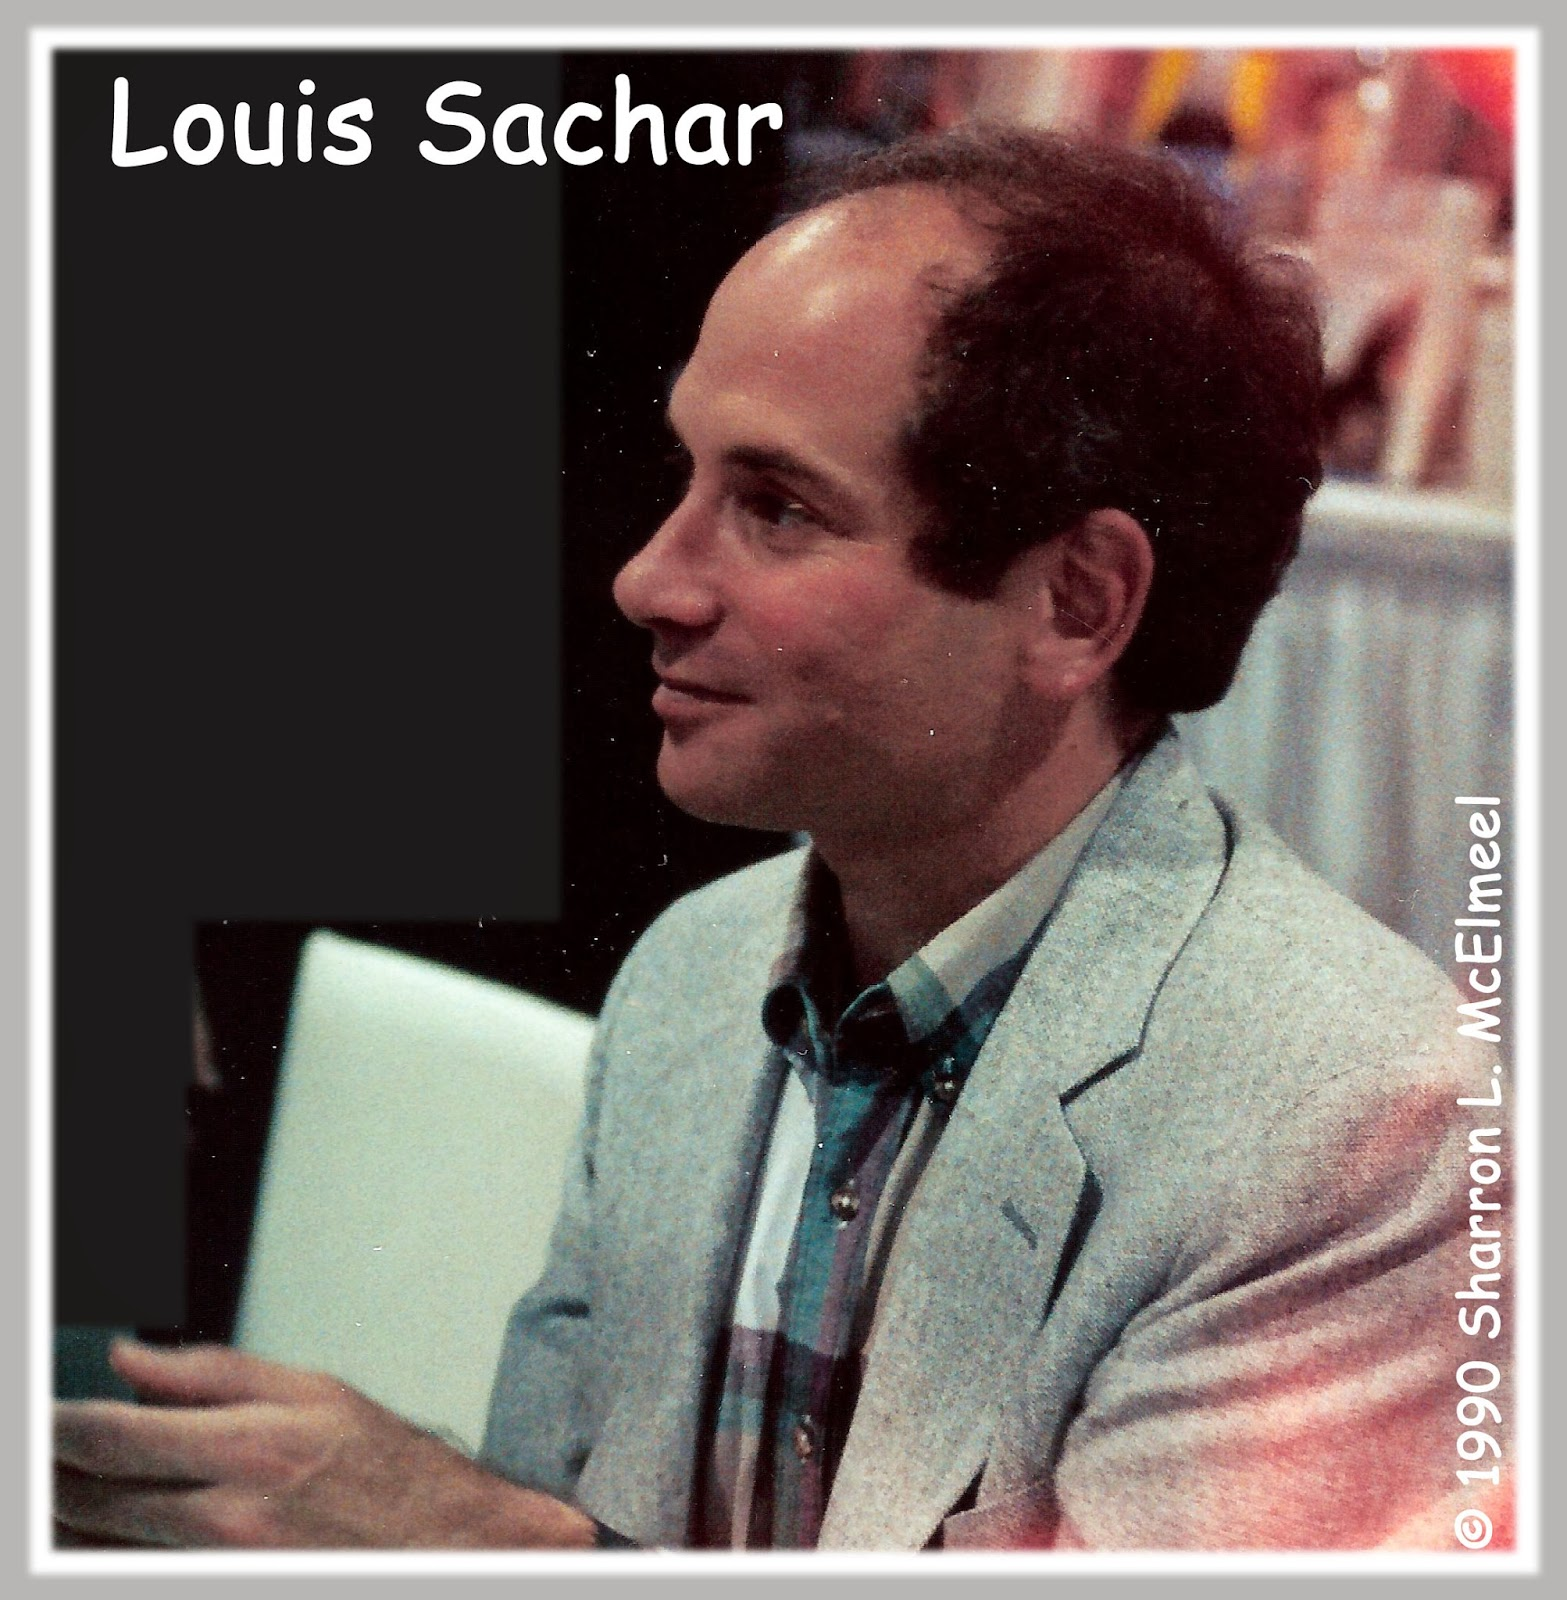 Can Money Buy Happiness Essay If You Need Help Writing A: Can You Give Me A Detailed Biography On Louis Sachar